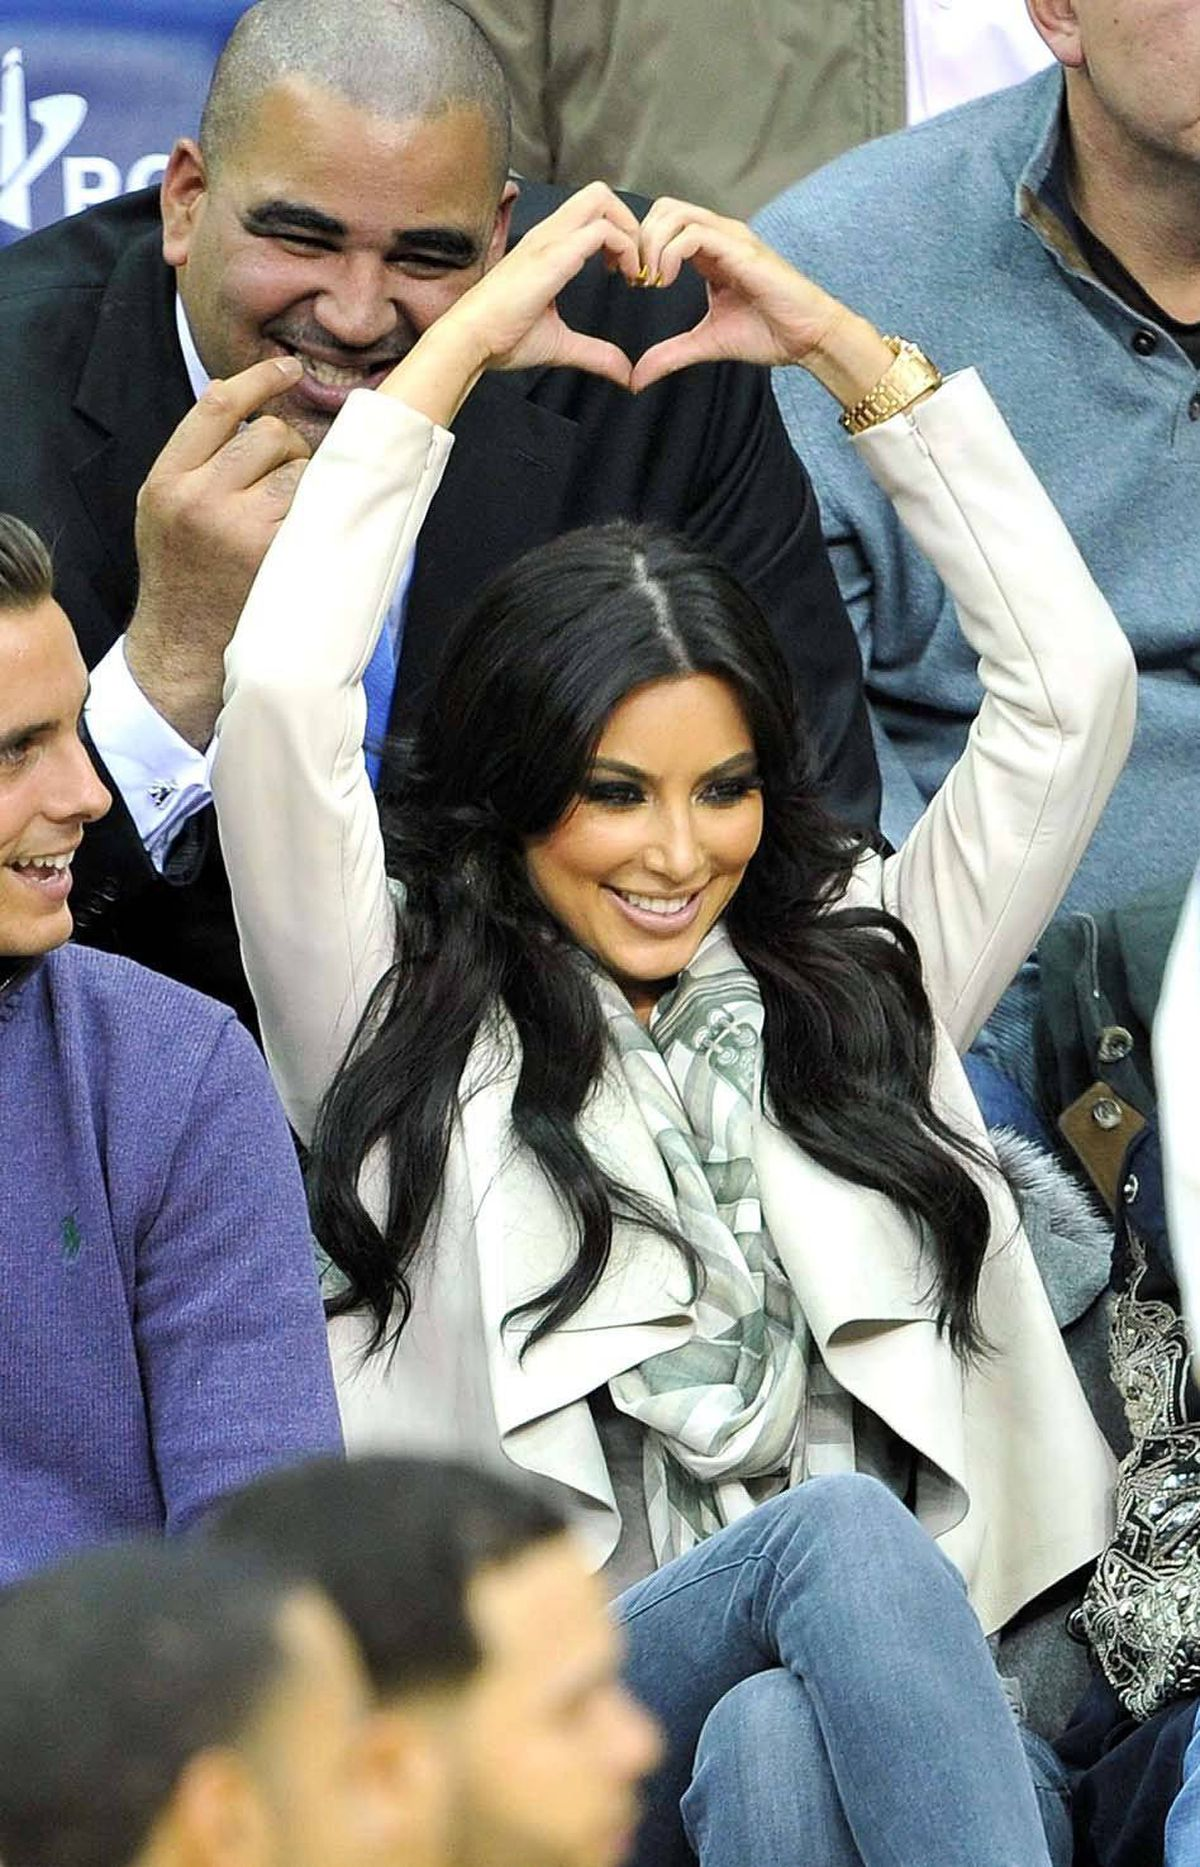 Boy met girl and magic happened, as evidenced here by Kim Kardashian sending completely unembarassing hand signals to Kris Humphries during a New Jersey Nets game in Newark on Jan. 19 of this year.